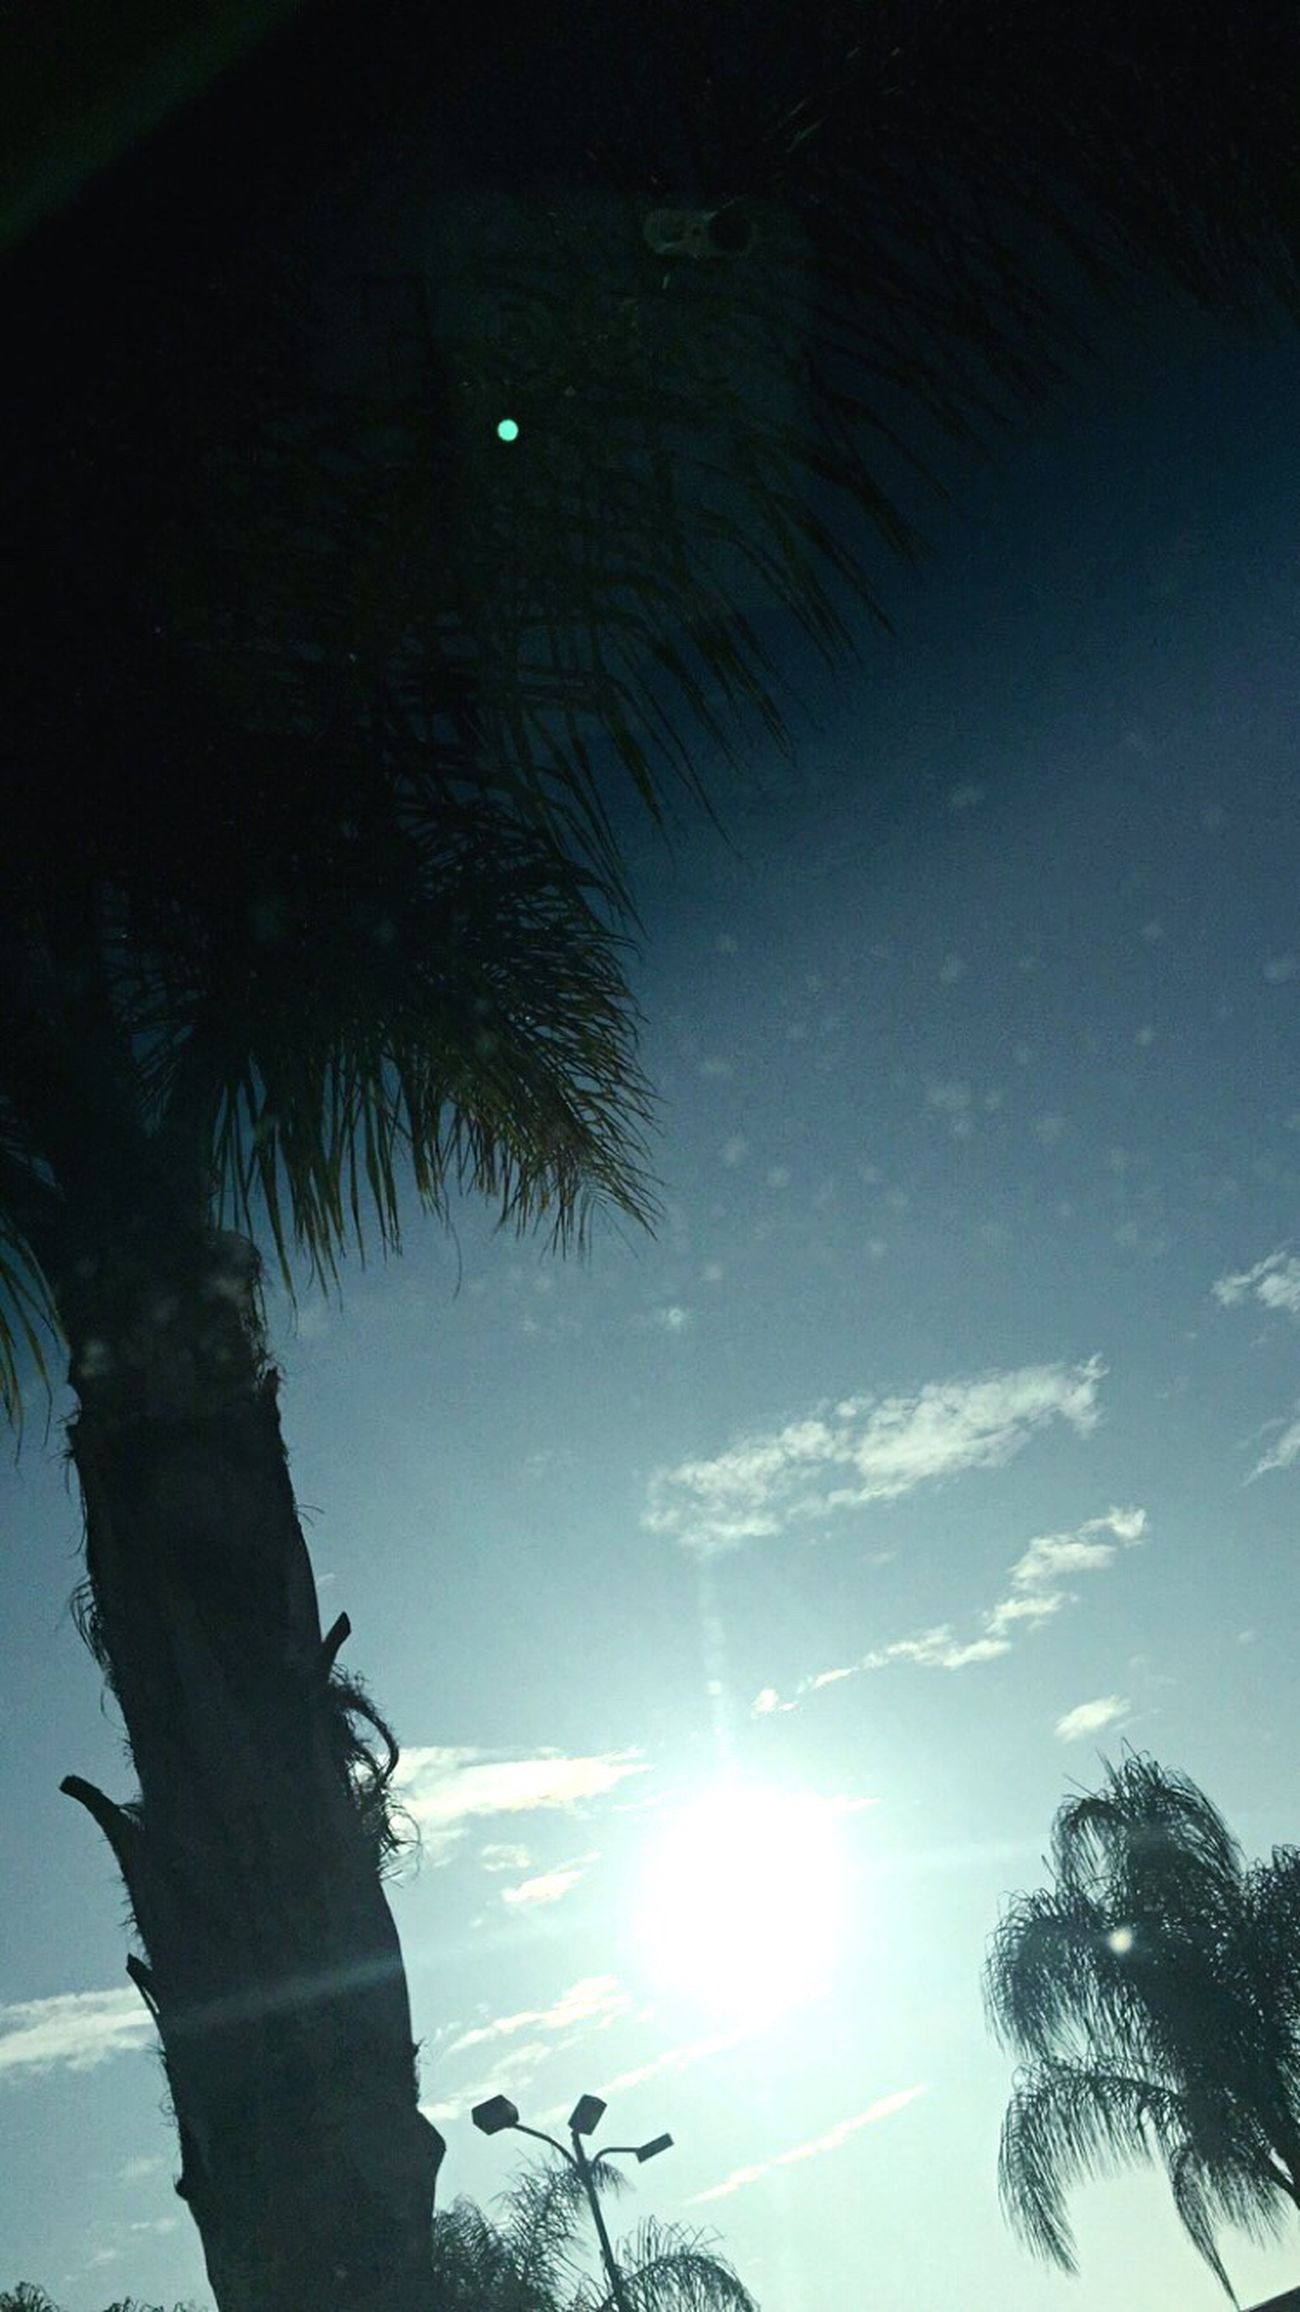 Palm Tree Beautiful Day In A Parking Lot Dirty Windshield Check This Out Blue Sky